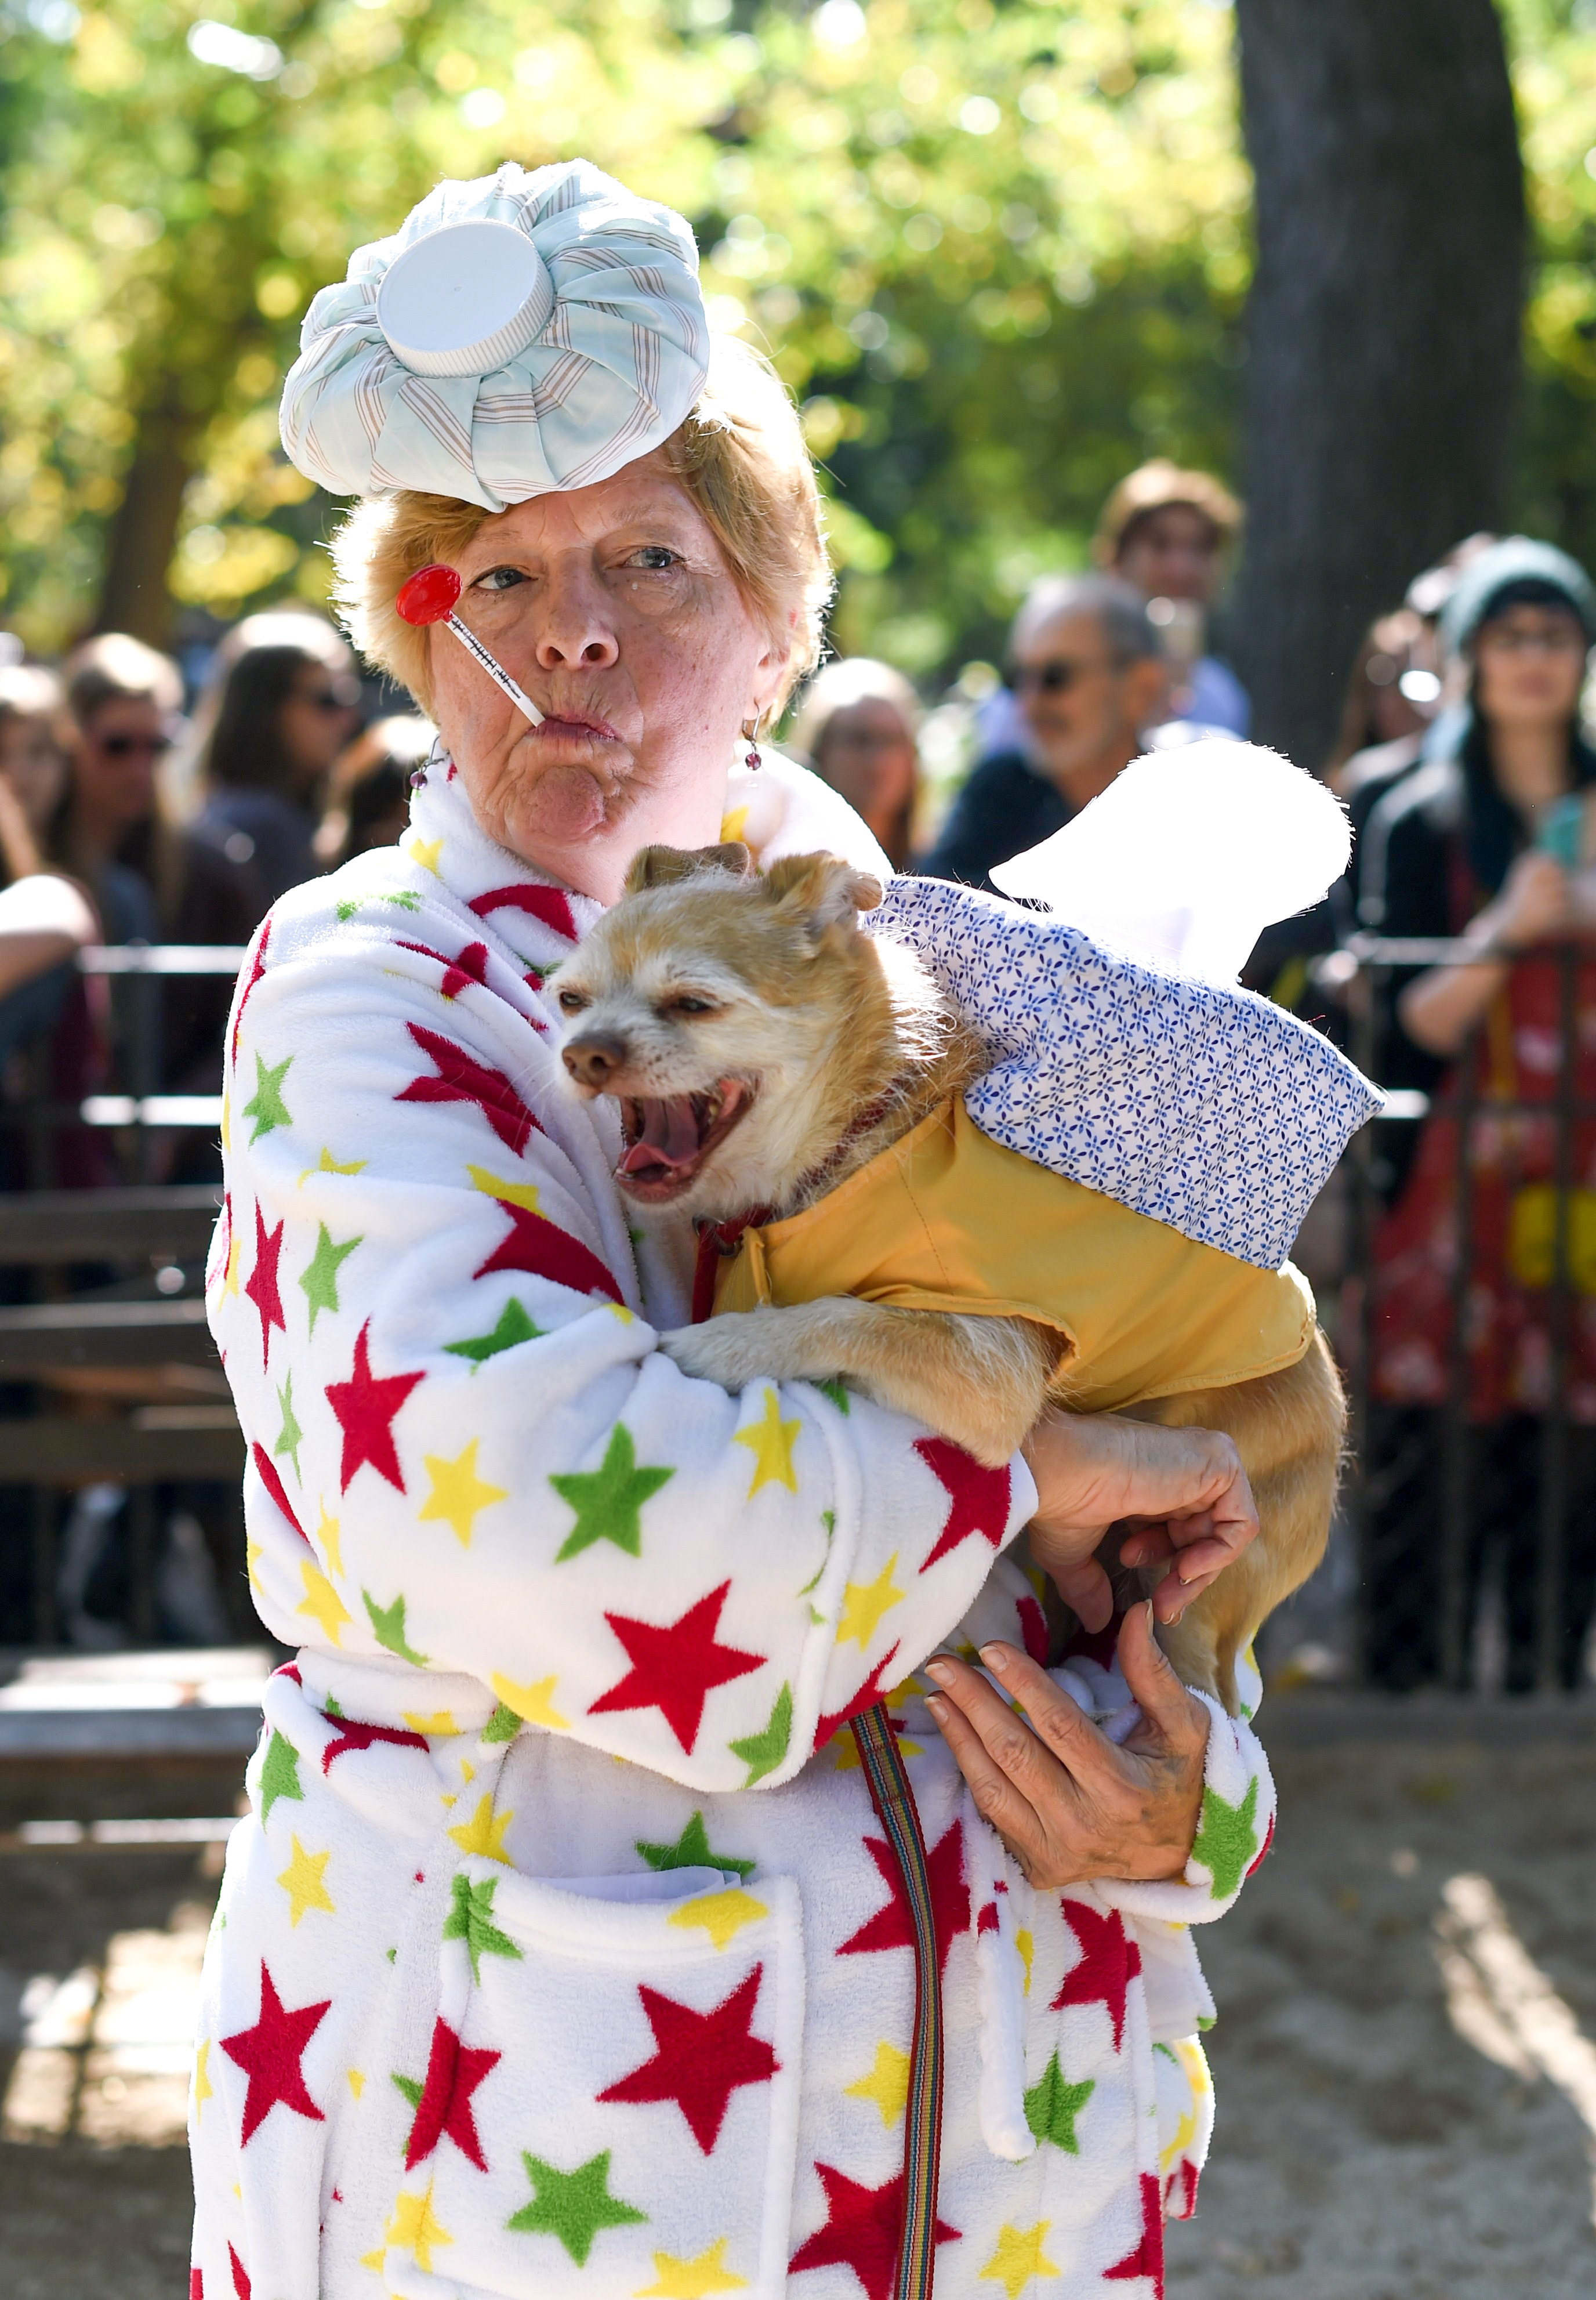 small dog yawning while their owner is holding them. the dog is wearing sweater costume that resembles a box of tissues